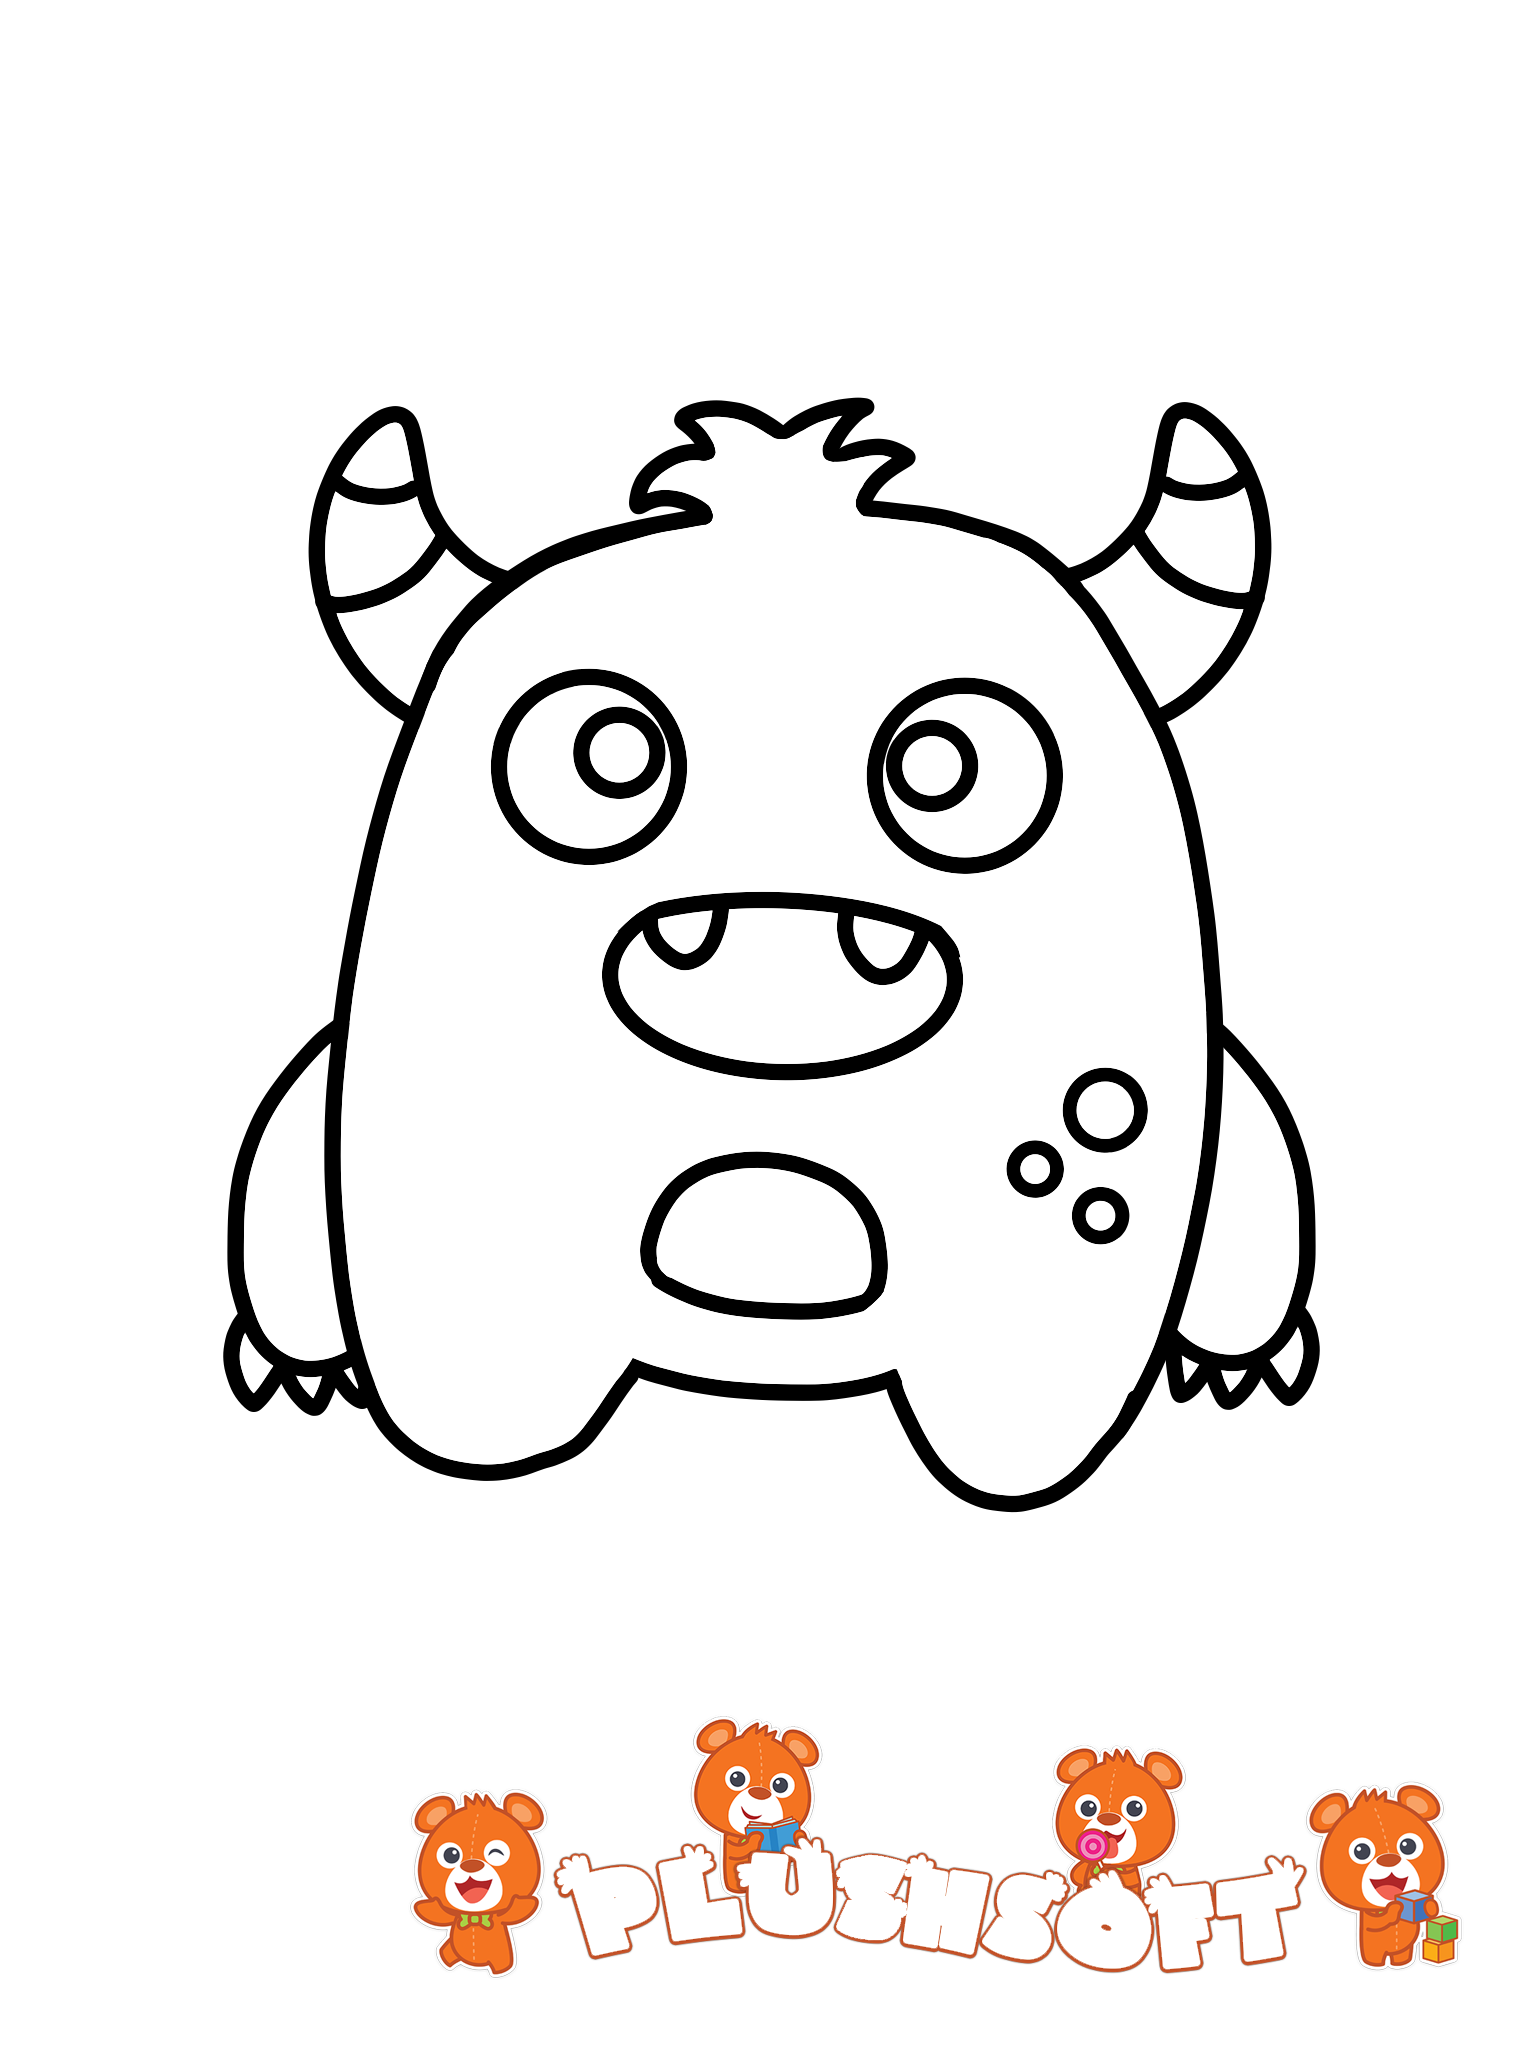 Free Printable Coloring Page A Cute Monster For Your Toddler To Color Subscribe For A N Teddy Bear Coloring Pages Monster Coloring Pages Bear Coloring Pages